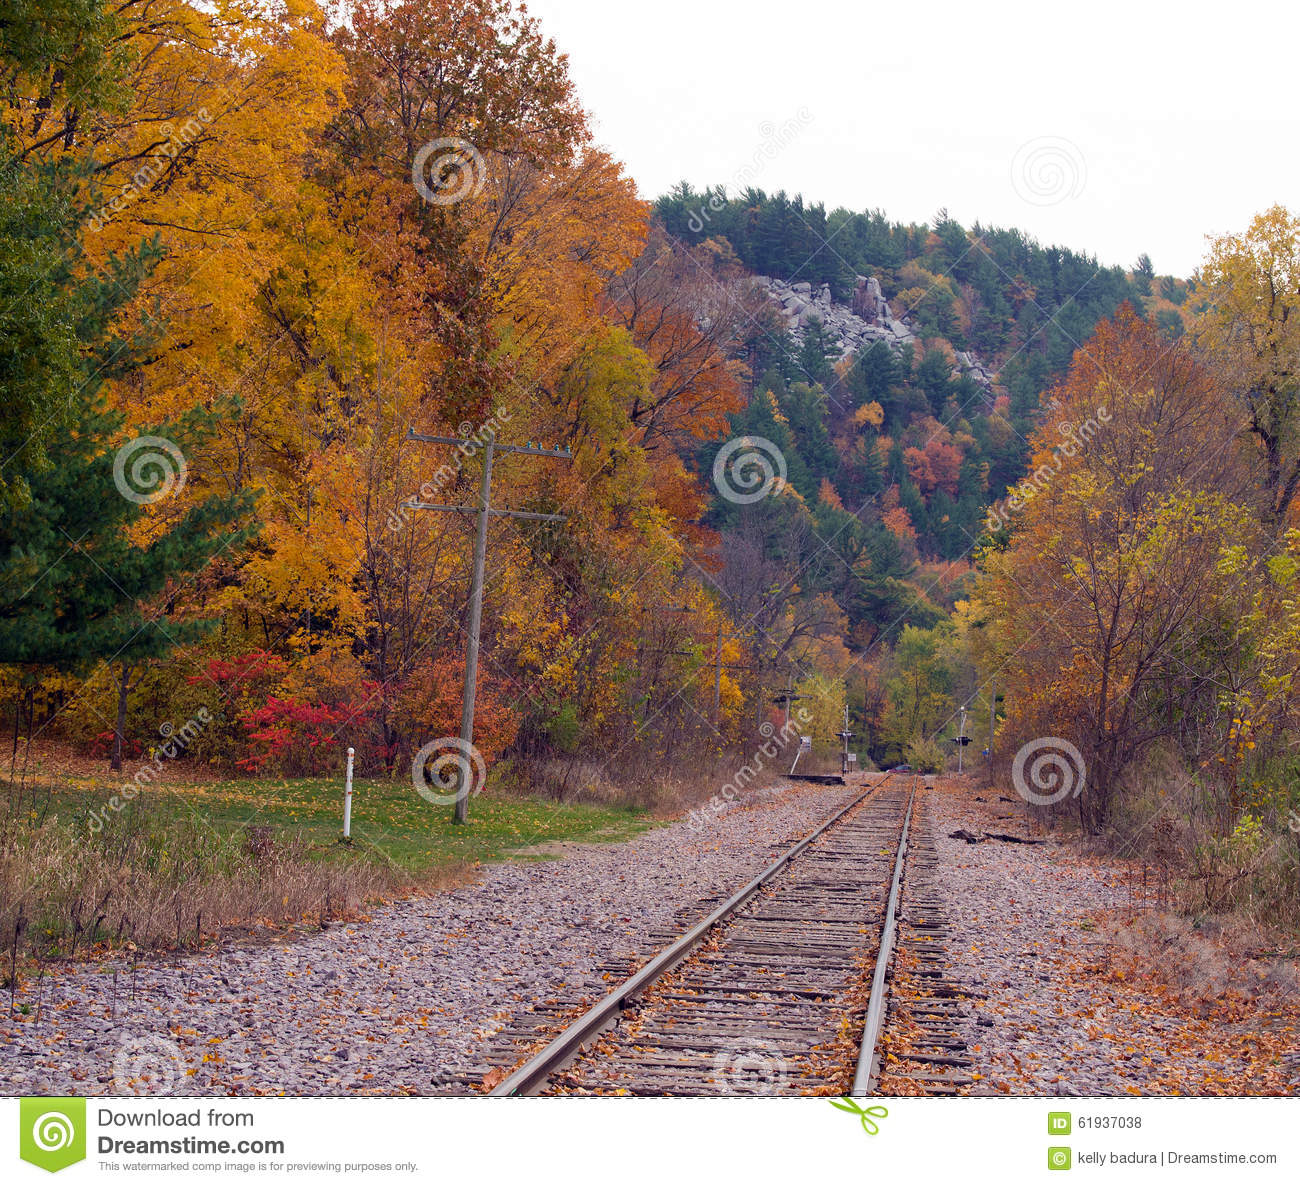 Looking down the train tracks in fall